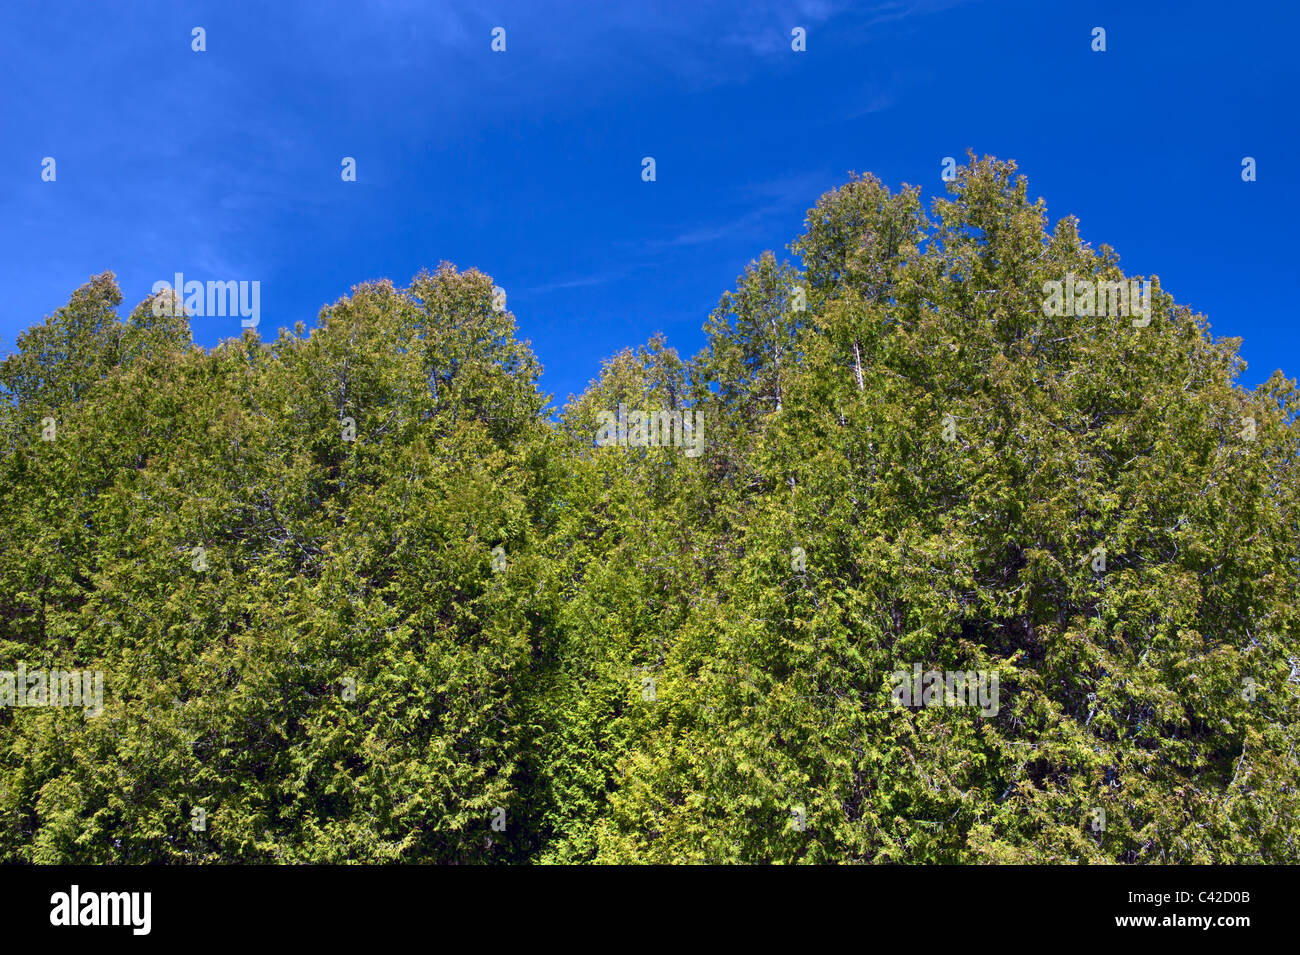 Partial view of a hedge of thuyas against a deep blue sky. Stock Photo